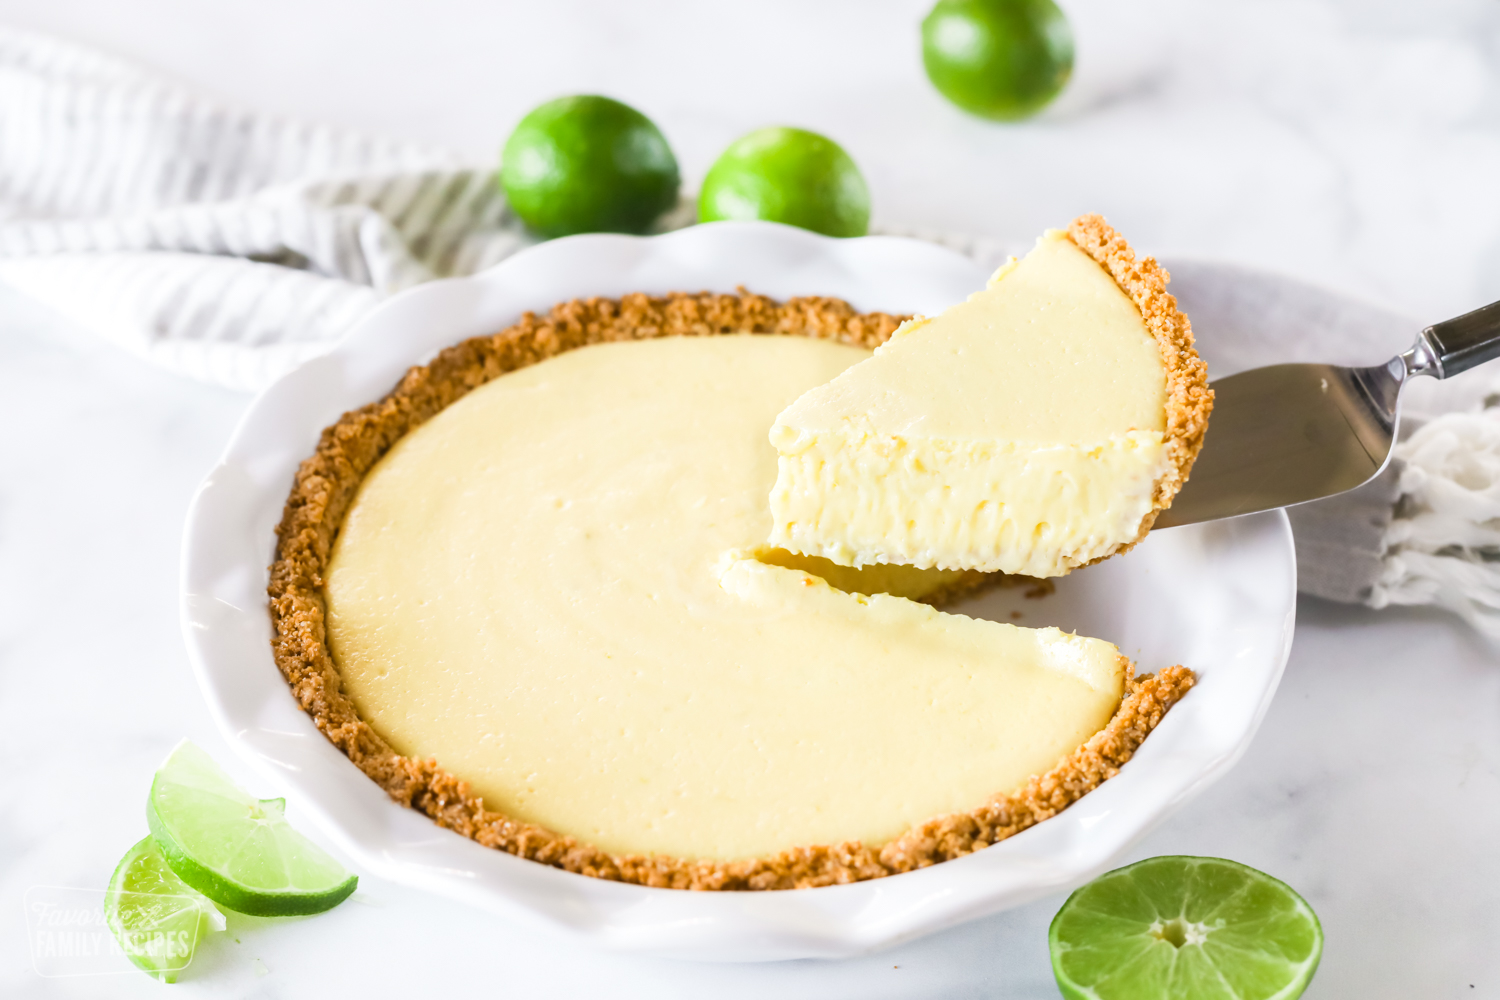 A plain slice of key lime pie being lifted from a pie pan with a pie knife